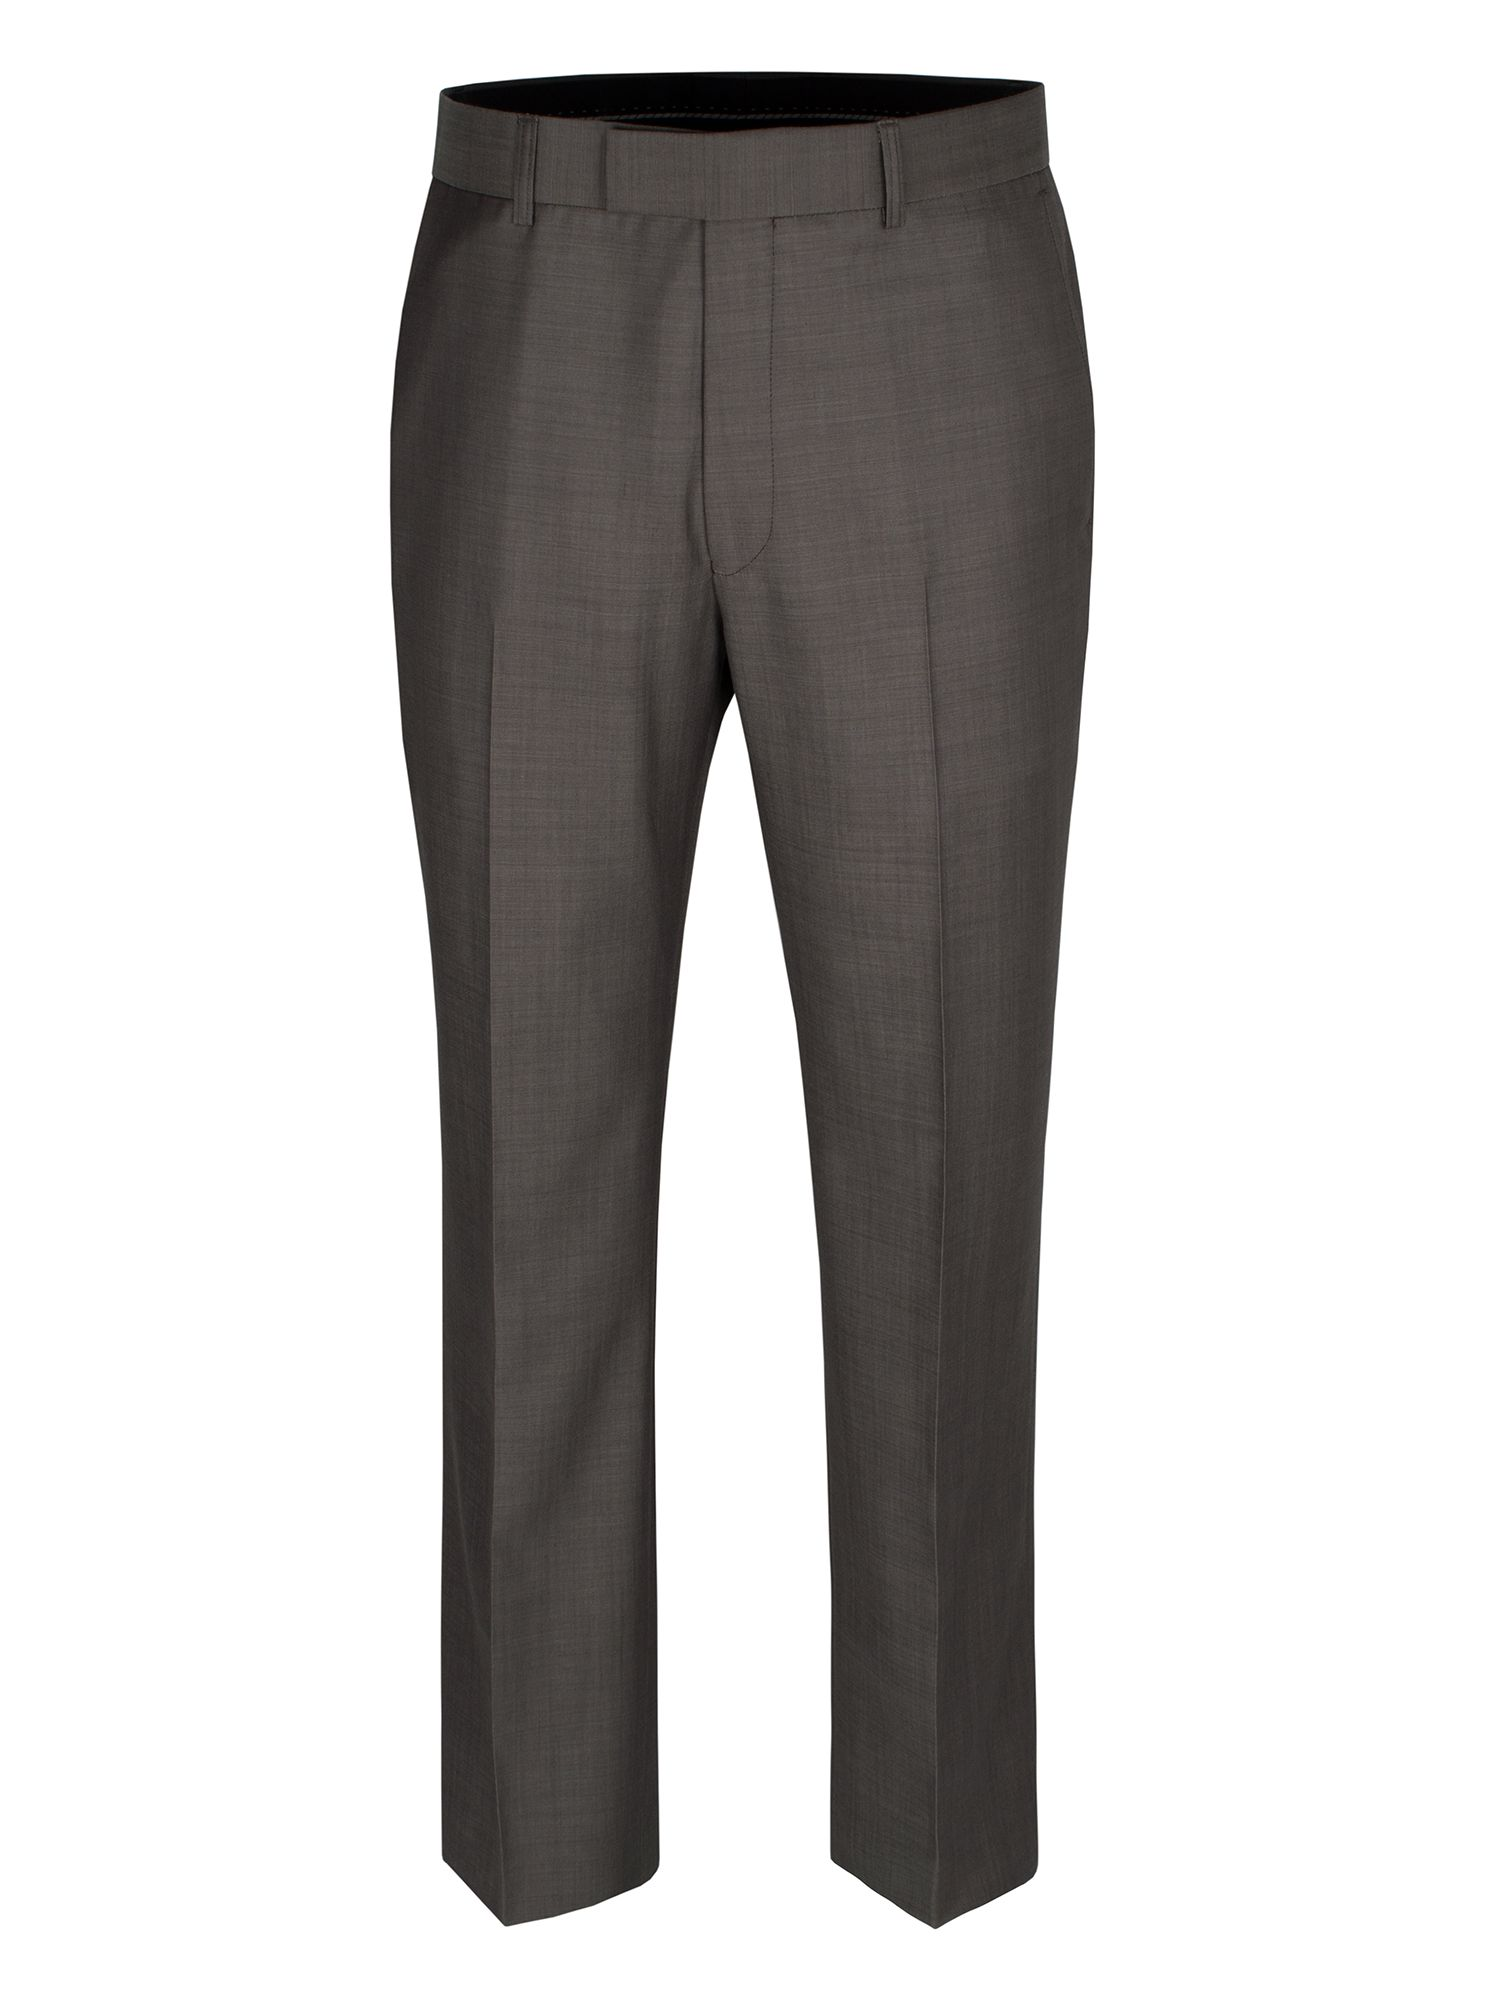 Taupe tonic trousers